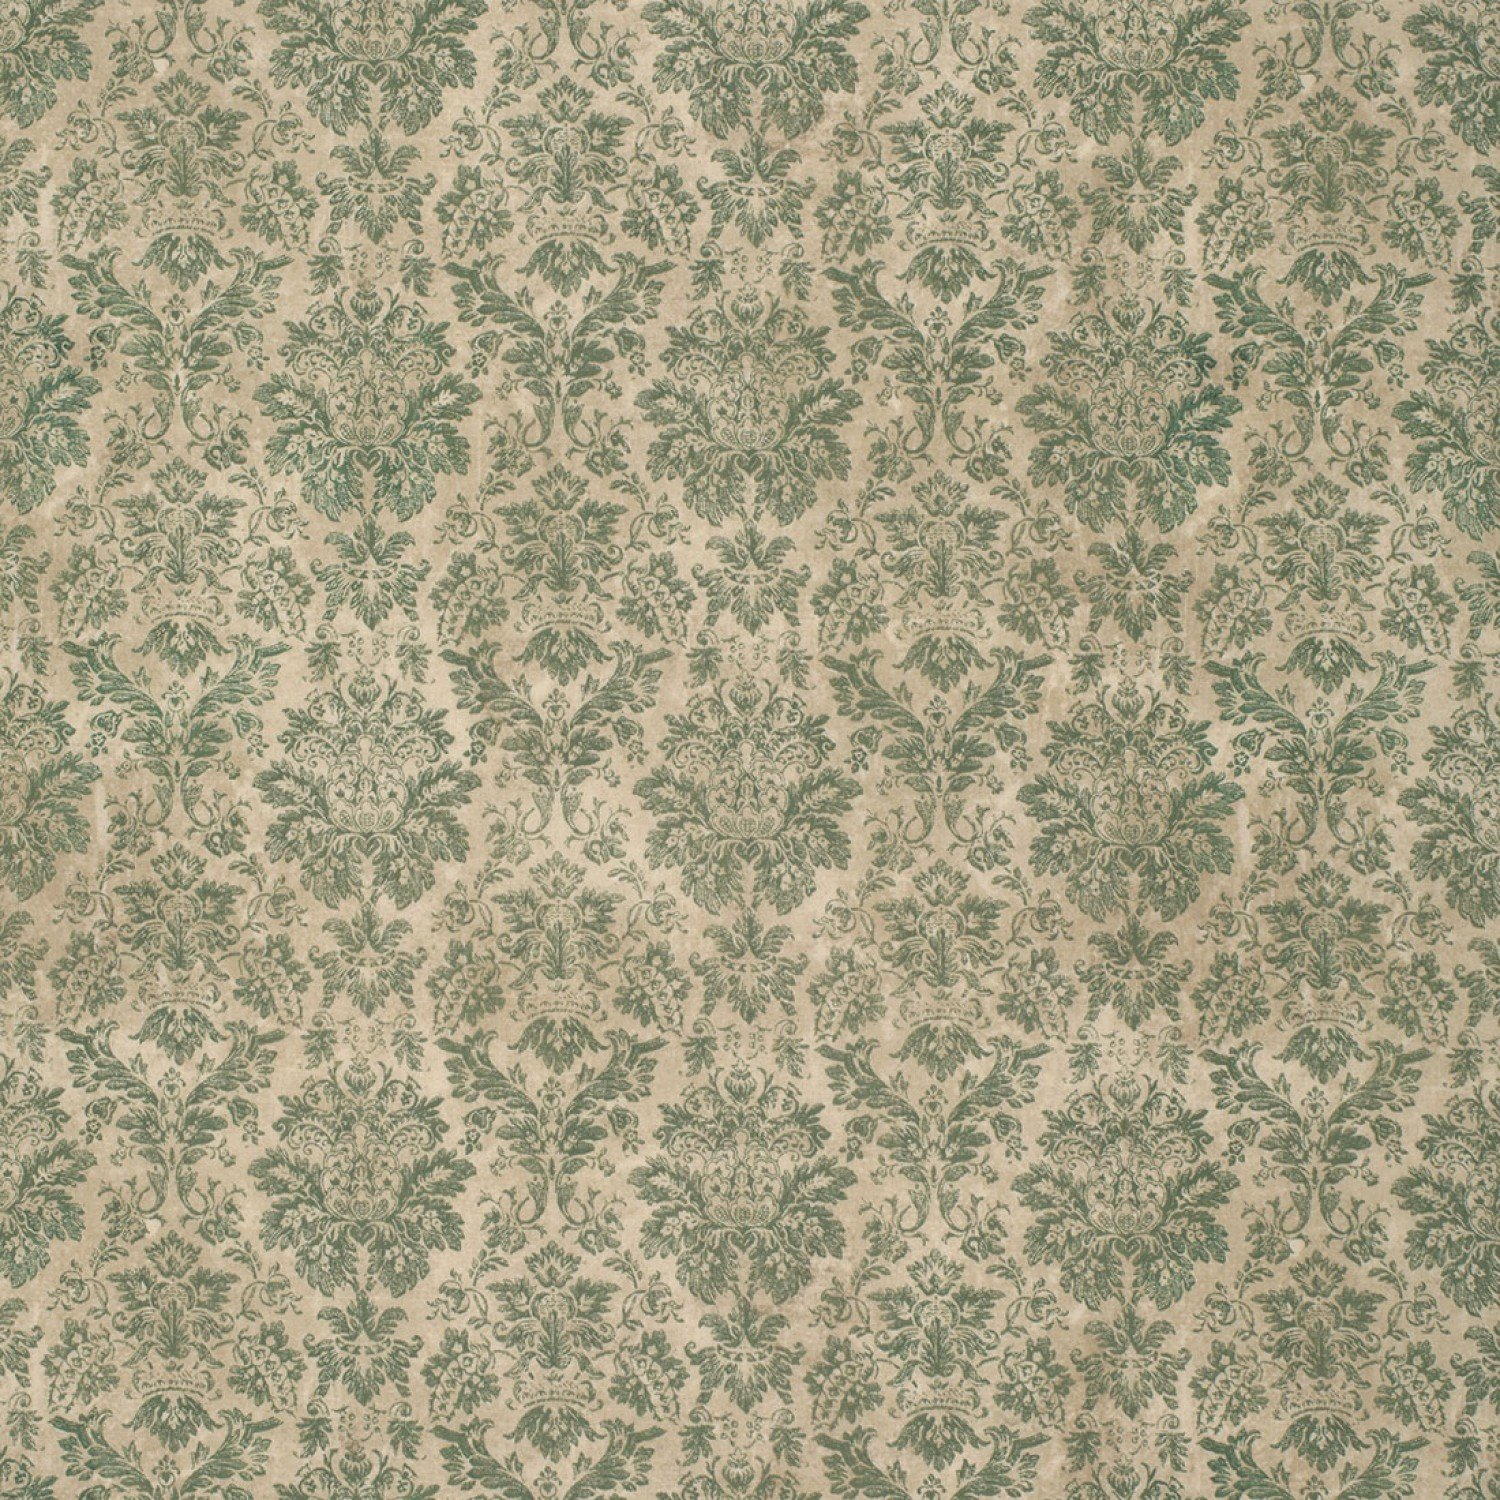 Eclectic Elements Wallflower Faded Damask Teal Fabric Yardage PWTH029.8TEAL